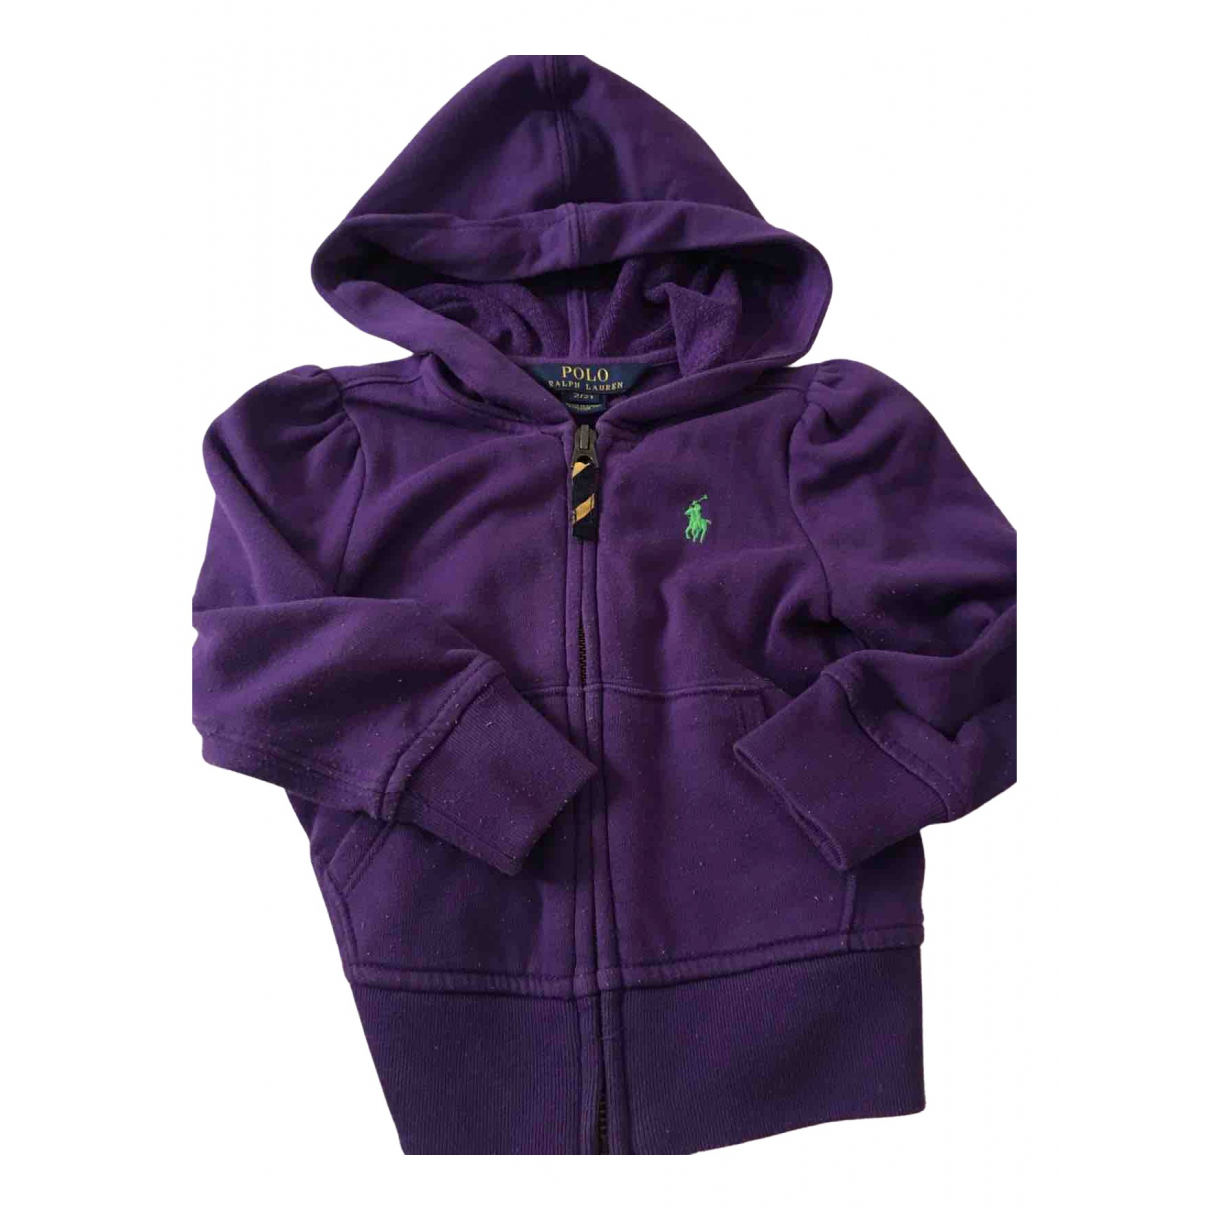 Polo Ralph Lauren \N Purple Cotton Knitwear for Kids 2 years - up to 86cm FR